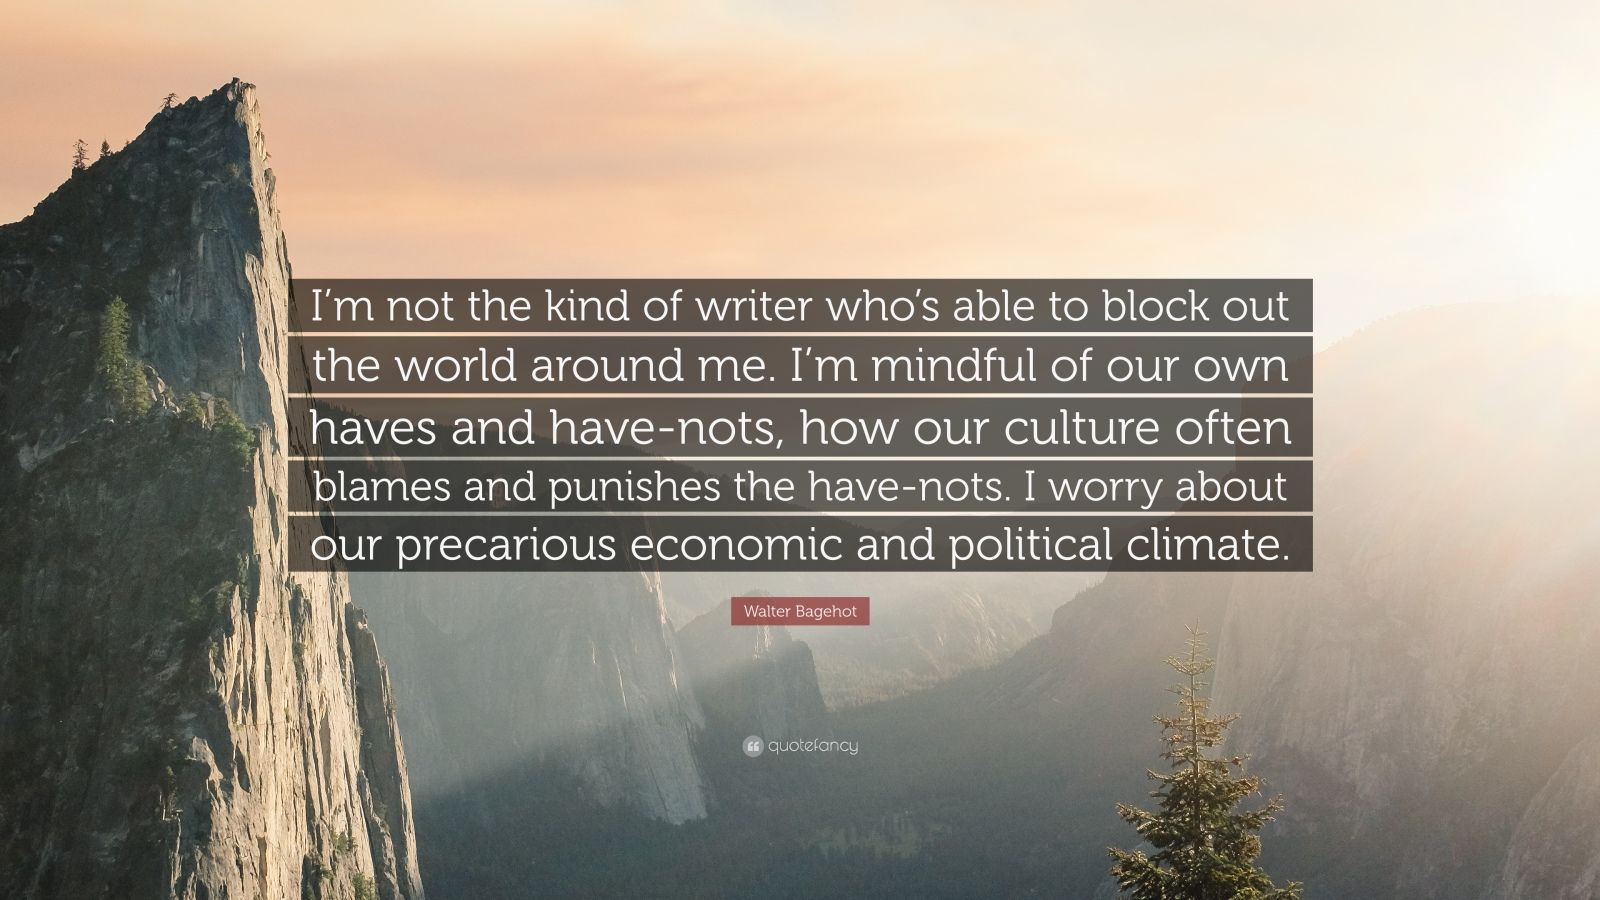 "Walter Bagehot Quote: ""I'm not the kind of writer who's able to block out the world around me. I'm mindful of our own haves and have-nots, how our culture often blames and punishes the have-nots. I worry about our precarious economic and political climate."""